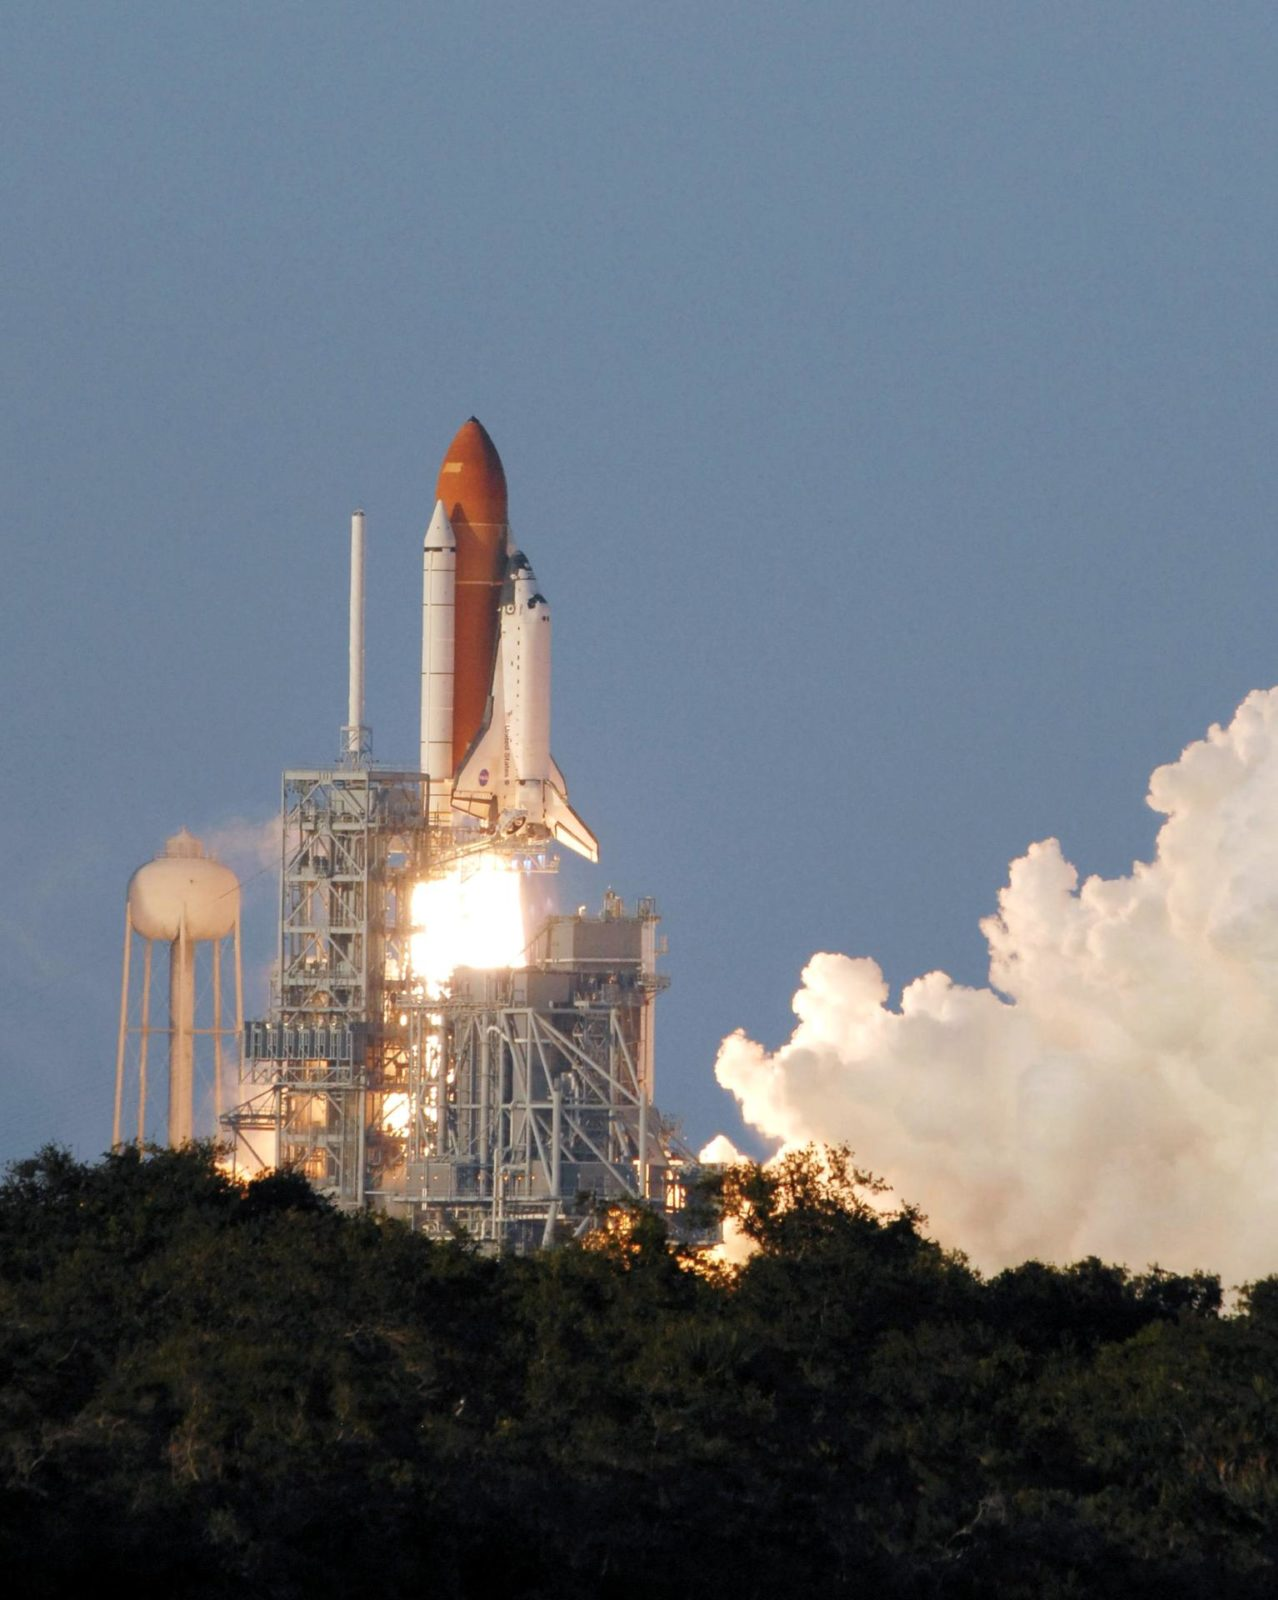 """STS117-S-010 (8 June 2007) --- The Space Shuttle Atlantis and its seven-member STS-117 crew head toward Earth-orbit and a scheduled link-up with the International Space Station. Liftoff from Kennedy Space Center's launch pad 39A occurred at 7:38 p.m. (EDT) on June 8, 2007. Onboard are astronauts Rick Sturckow, commander; Lee Archambault, pilot; Jim Reilly, Patrick Forrester, John """"Danny"""" Olivas, Steven Swanson and Clayton Anderson, all mission specialists. Anderson will join Expedition 15 in progress to serve as a flight engineer aboard the station. Atlantis will dock with the orbital outpost on Sunday, June 10, to begin a joint mission that will increase the complex's power generation capability. Using the shuttle and station robotic arms and conducting three scheduled spacewalks, the astronauts will install another set of giant solar array wings on the station and retract another array, preparing it for a future move. STS117-S-010"""